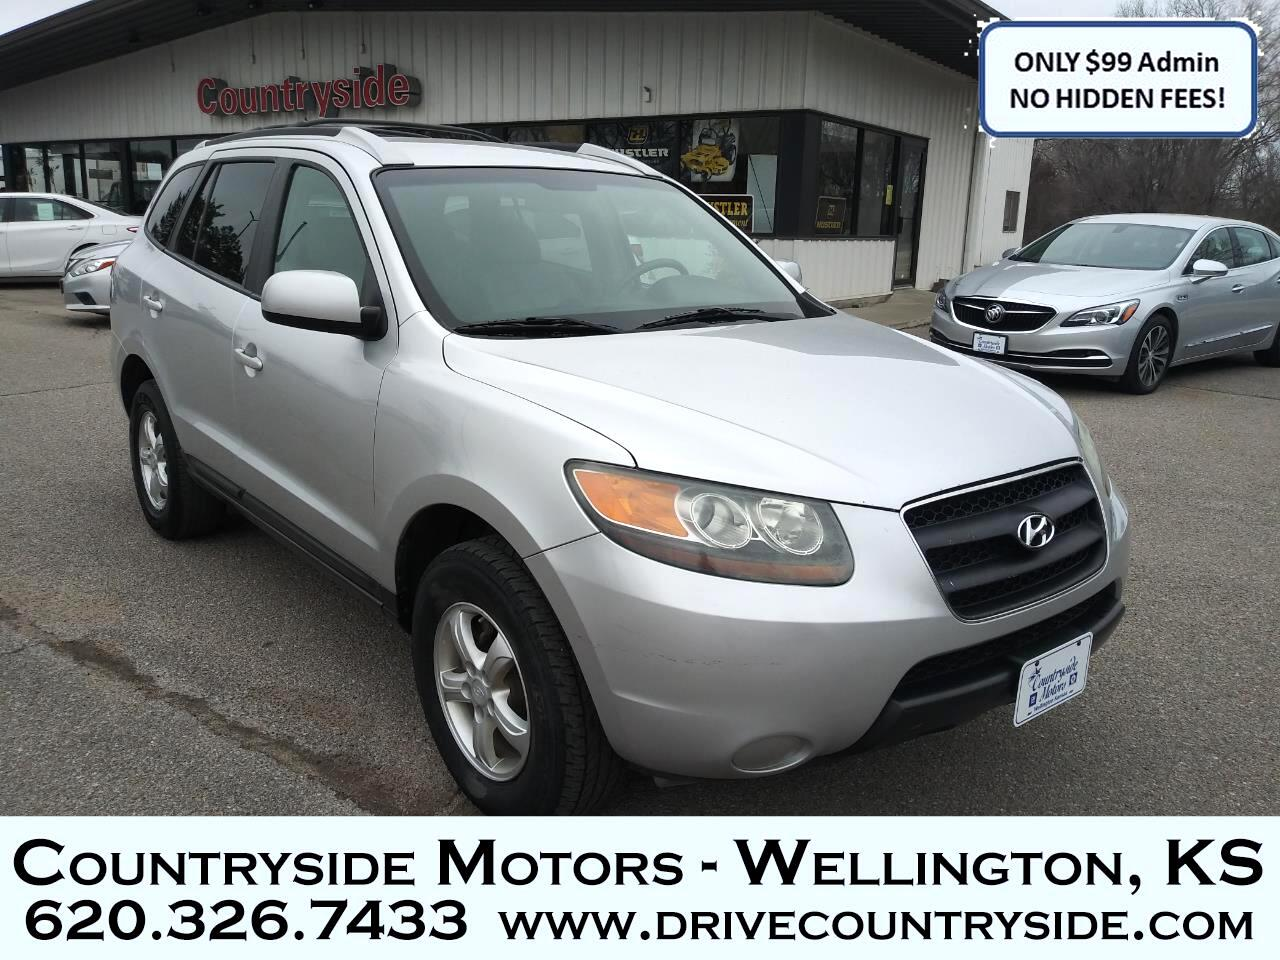 Used 2007 Hyundai Santa Fe 4dr Gls 2wd Auto 2 7l V6 For Sale In Wellington Ks 67152 Countryside Motors